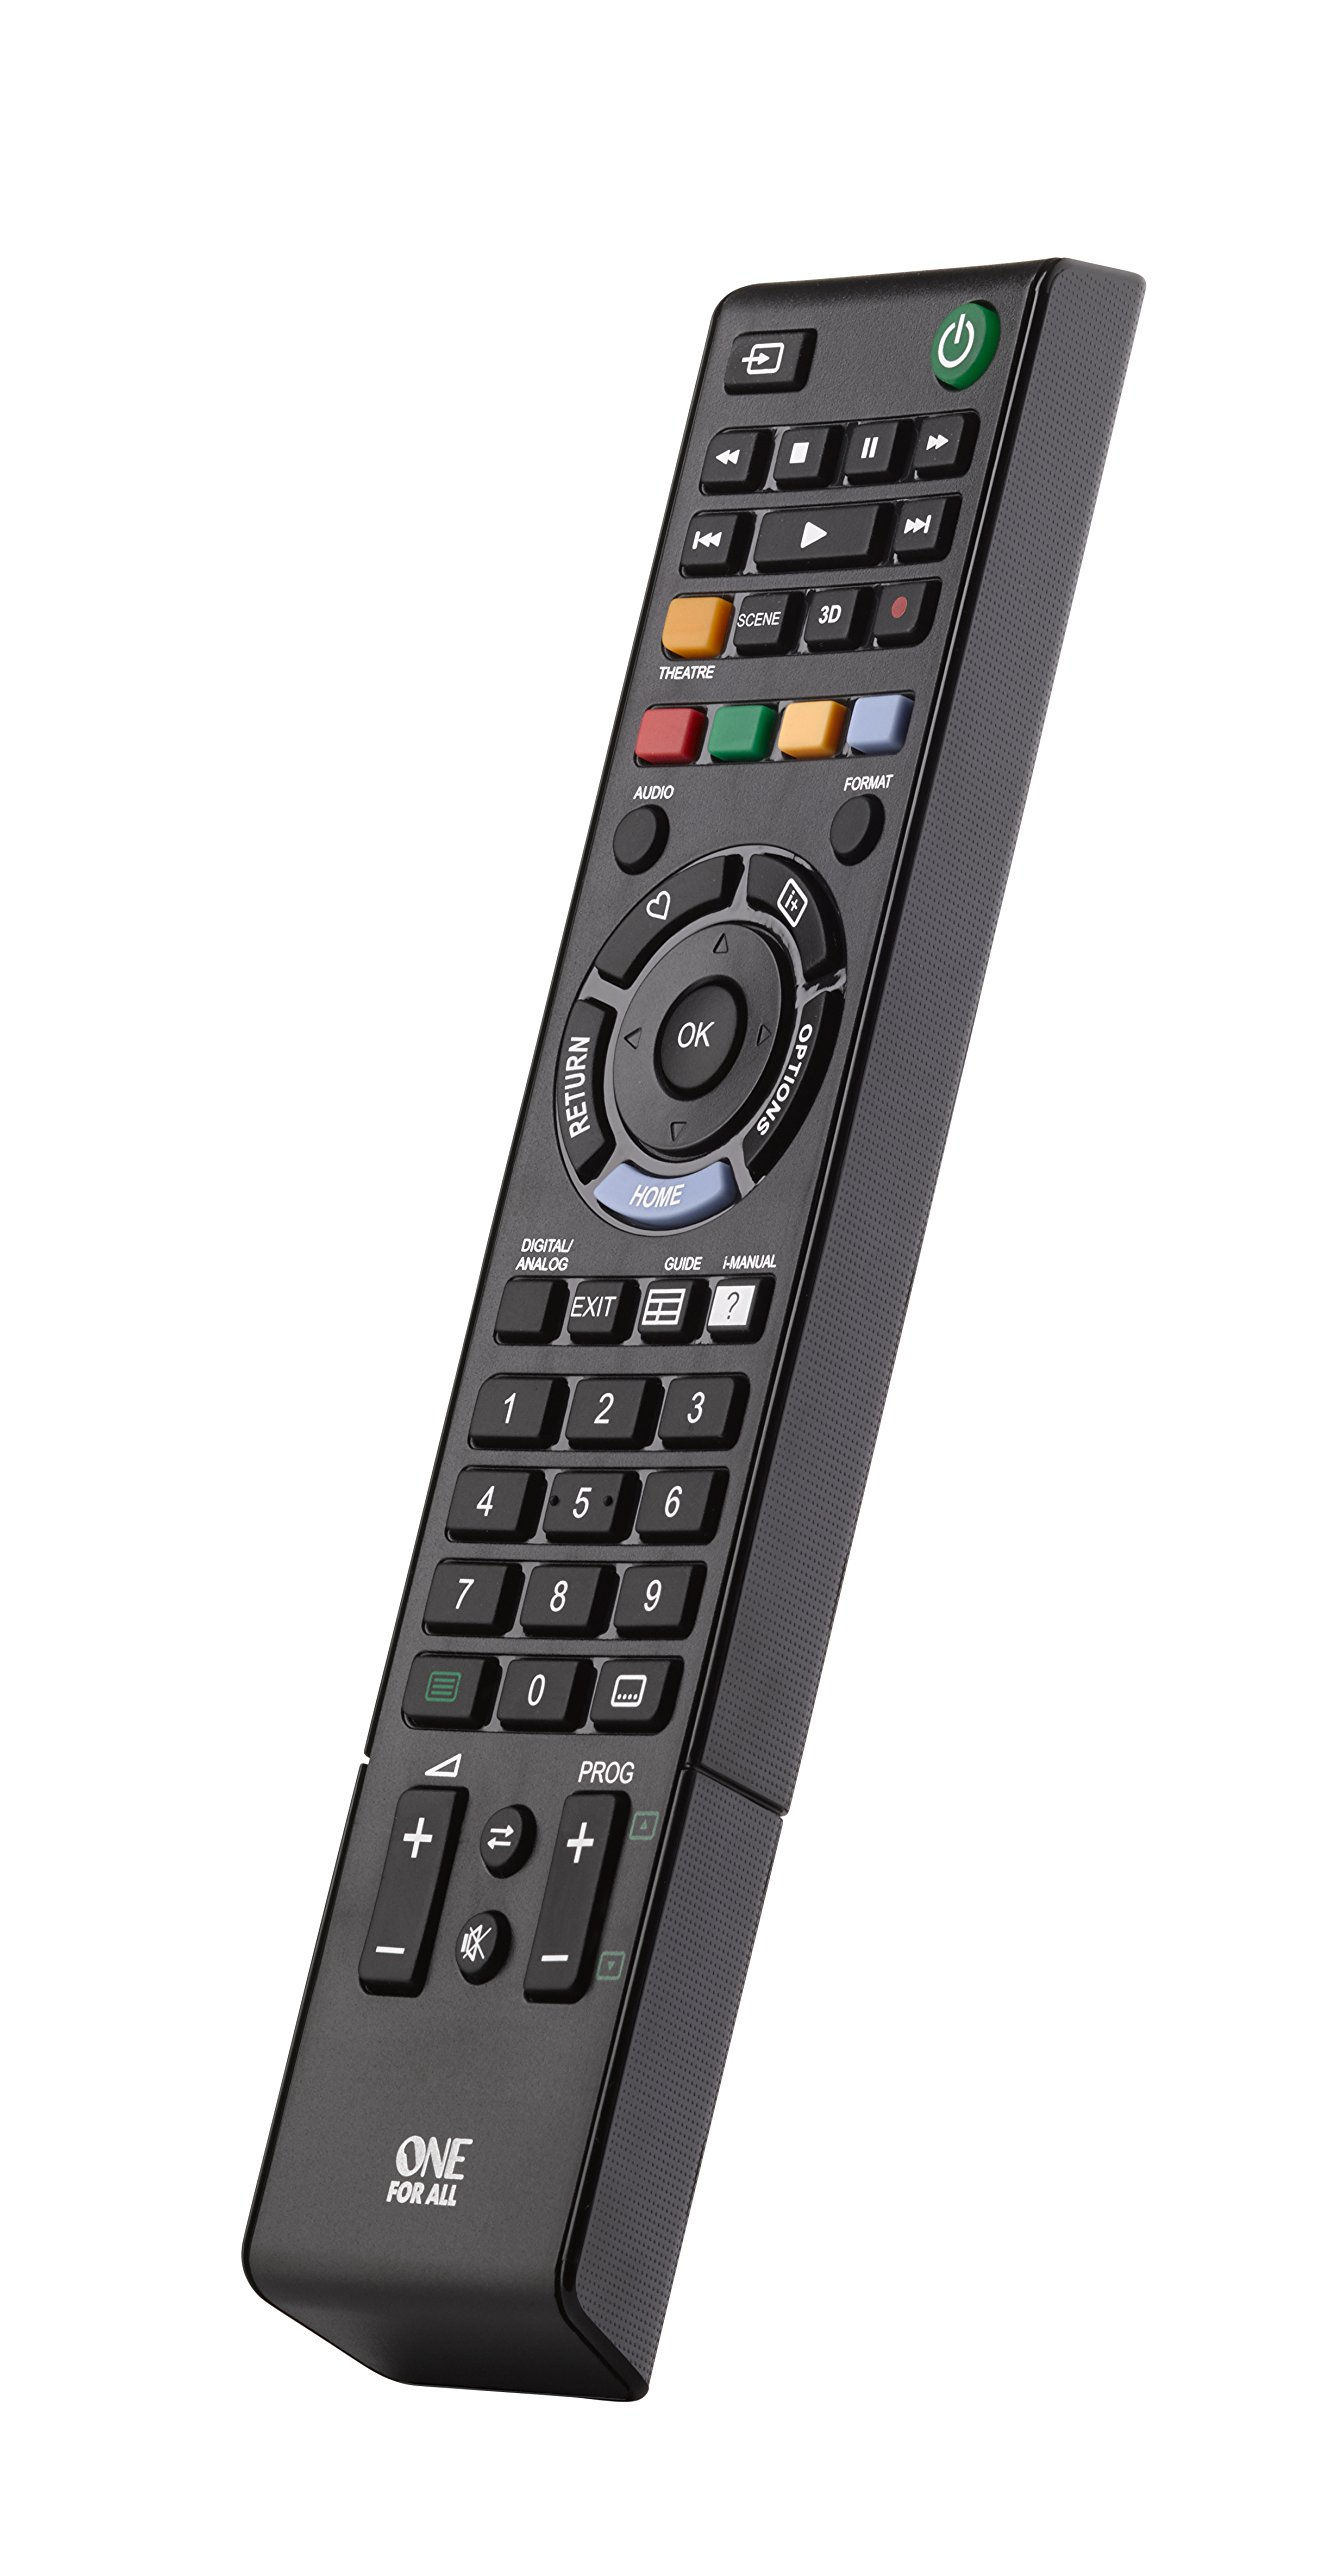 One For All URC1912 - Mando a Distancia de reemplazo para Televisores Sony – Control Remoto Universal para Todo Tipo de TVs de la Marca Sony: ONE FOR ALL: Amazon.es: Electrónica